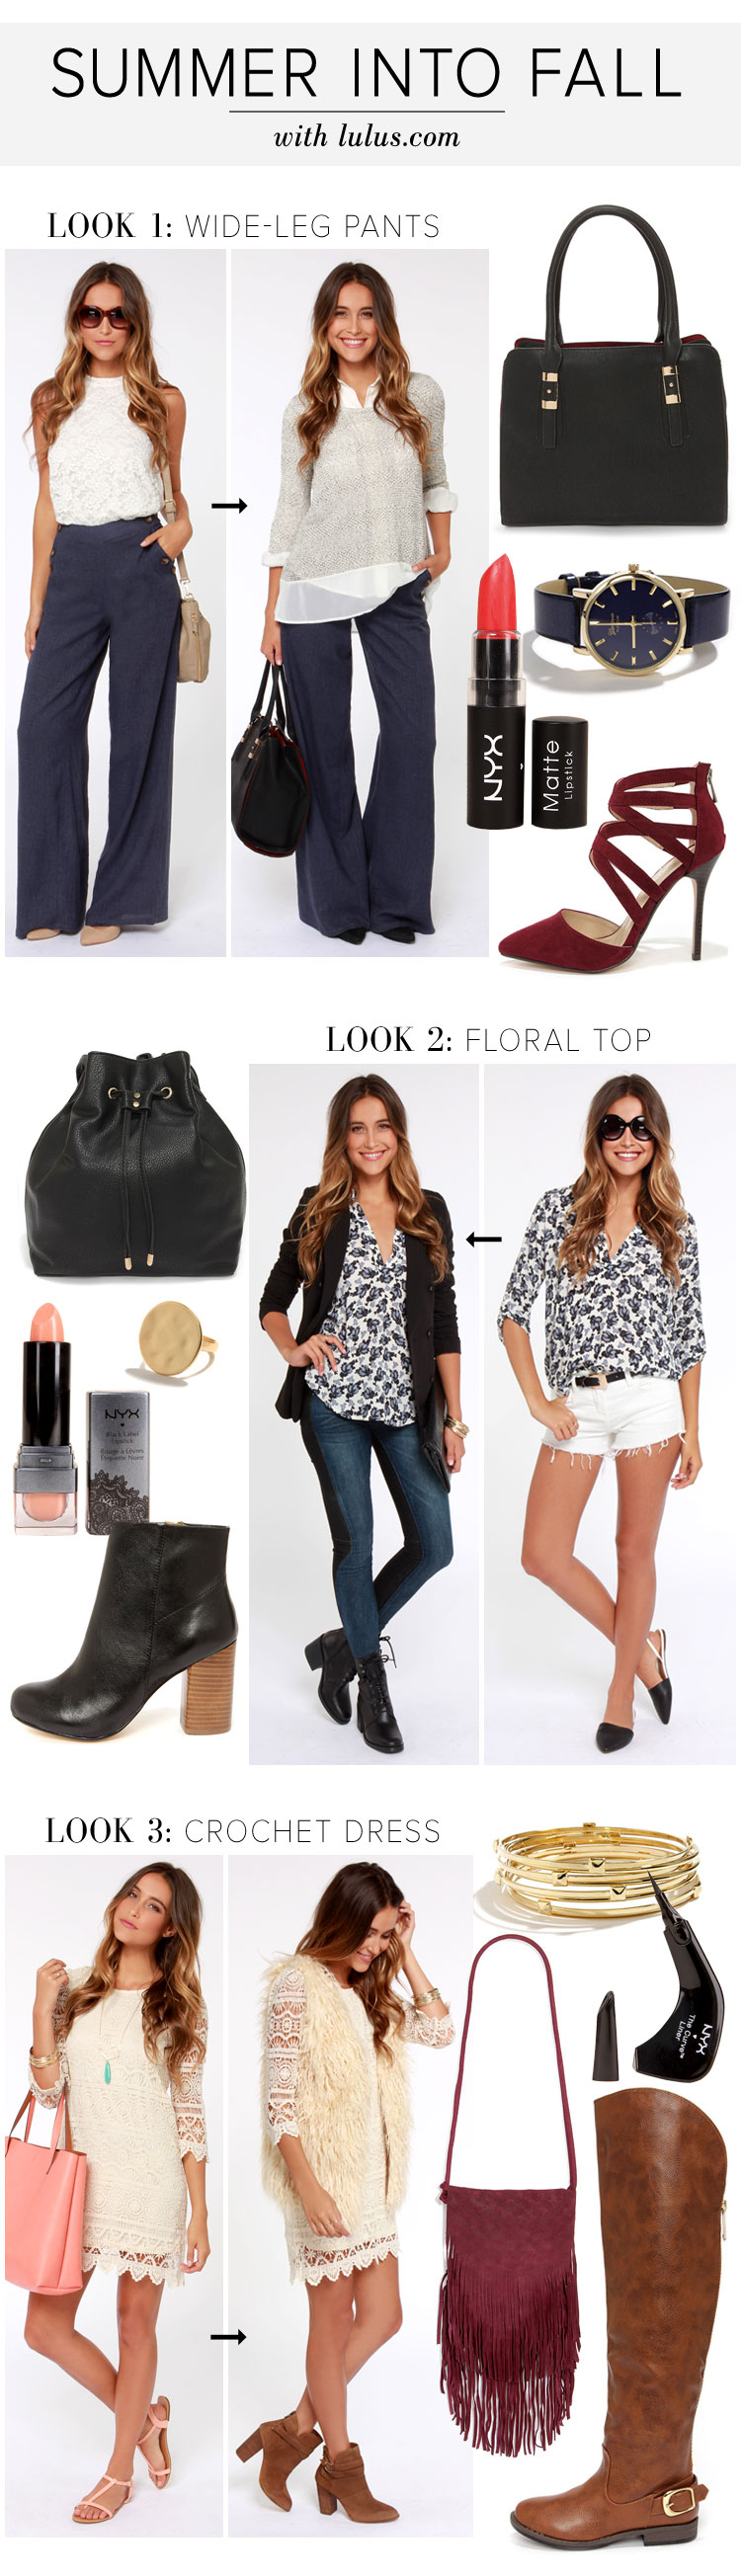 Summer Into Fall Style Guide Fashion Blog